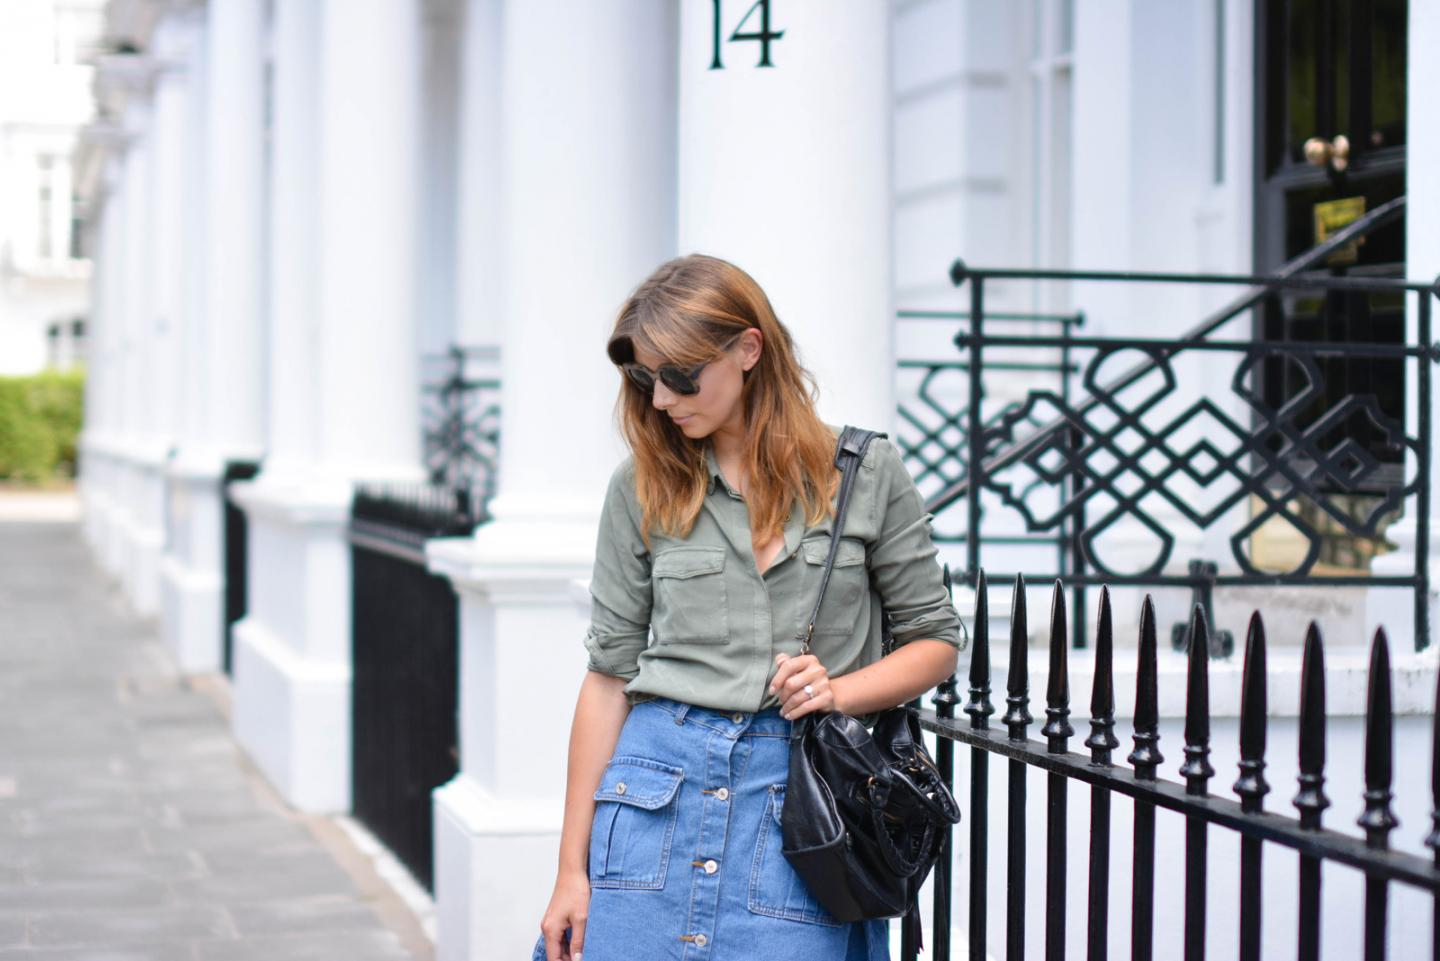 EJSTYLE - Emma Hill wears button up denim skirt with pockets with a khaki shirt, Balenciaga bag, how to dress for summer